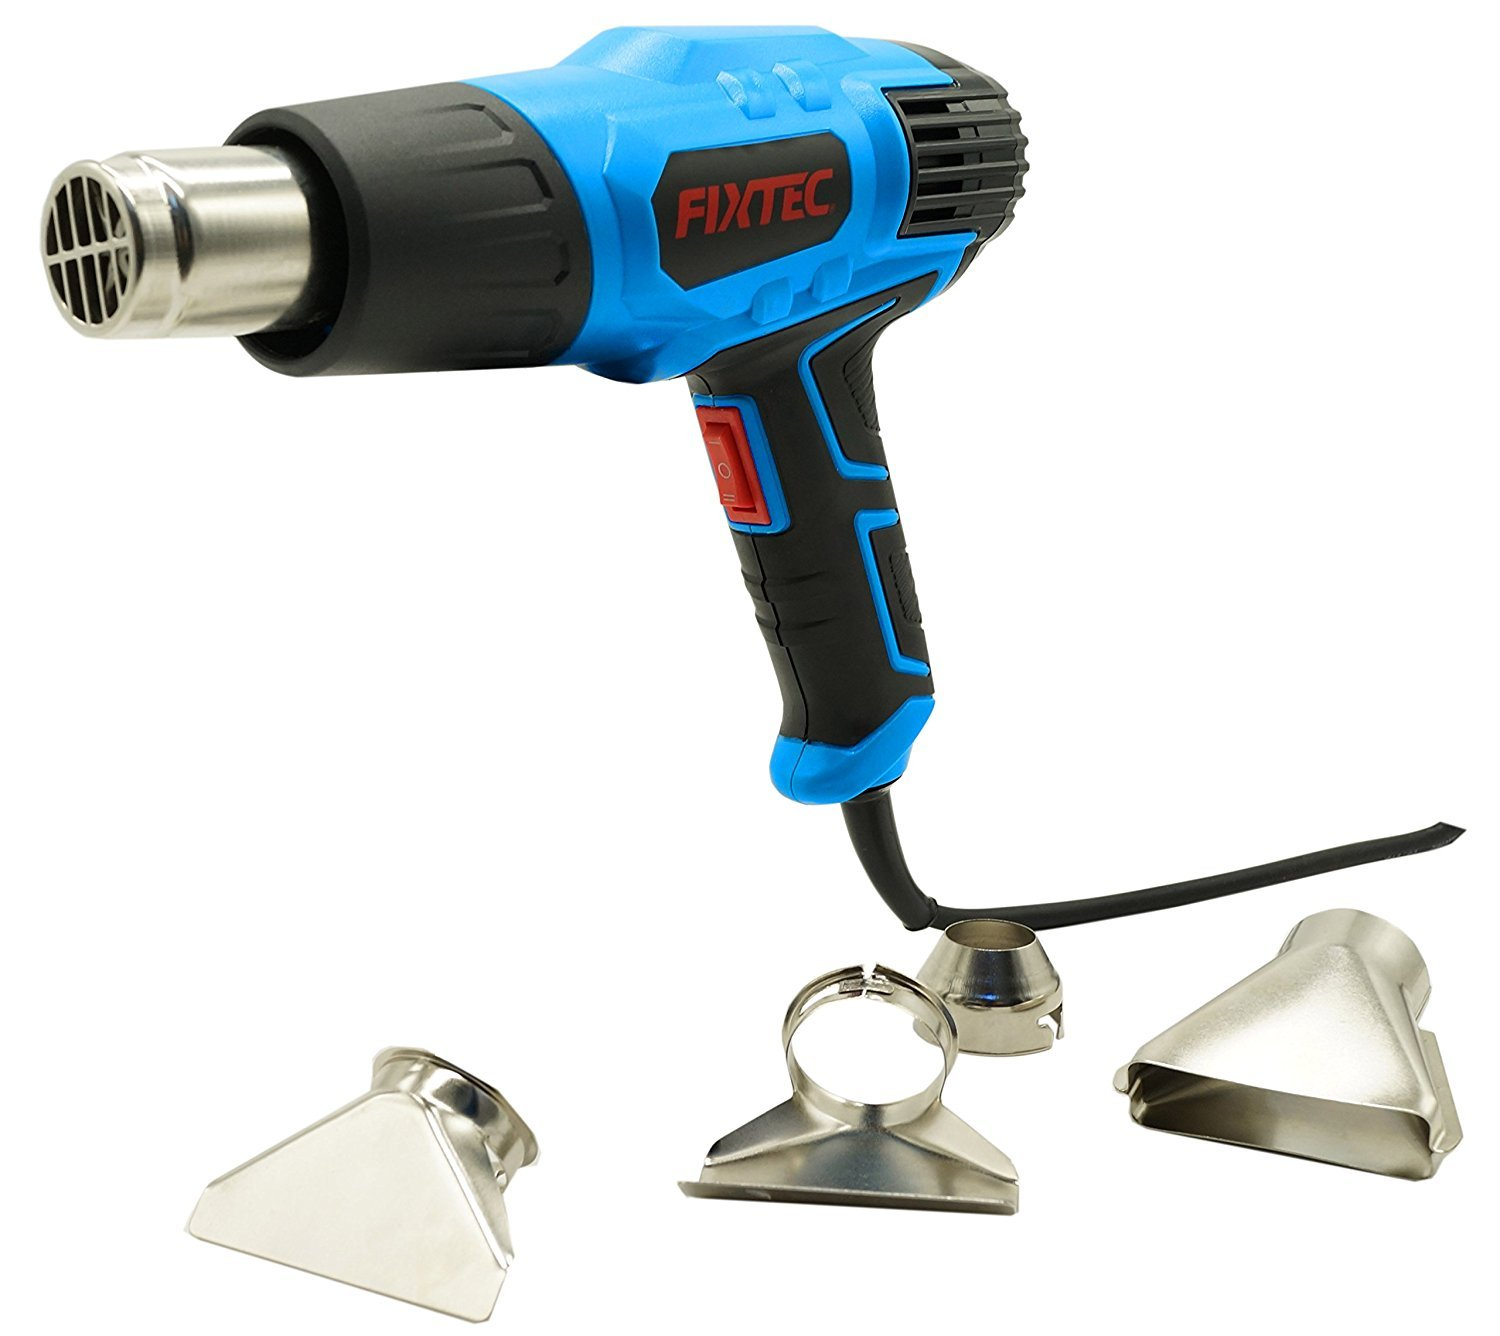 2018 JUST RELEASED Heat gun 1500W 662℉~1022℉ (350℃~550℃) with Heat Shrink Tubing Four Nozzle Attachments for Removing Paint, Bending Pipes, ShrinkingHeat Gun Heat Shrink Wrap